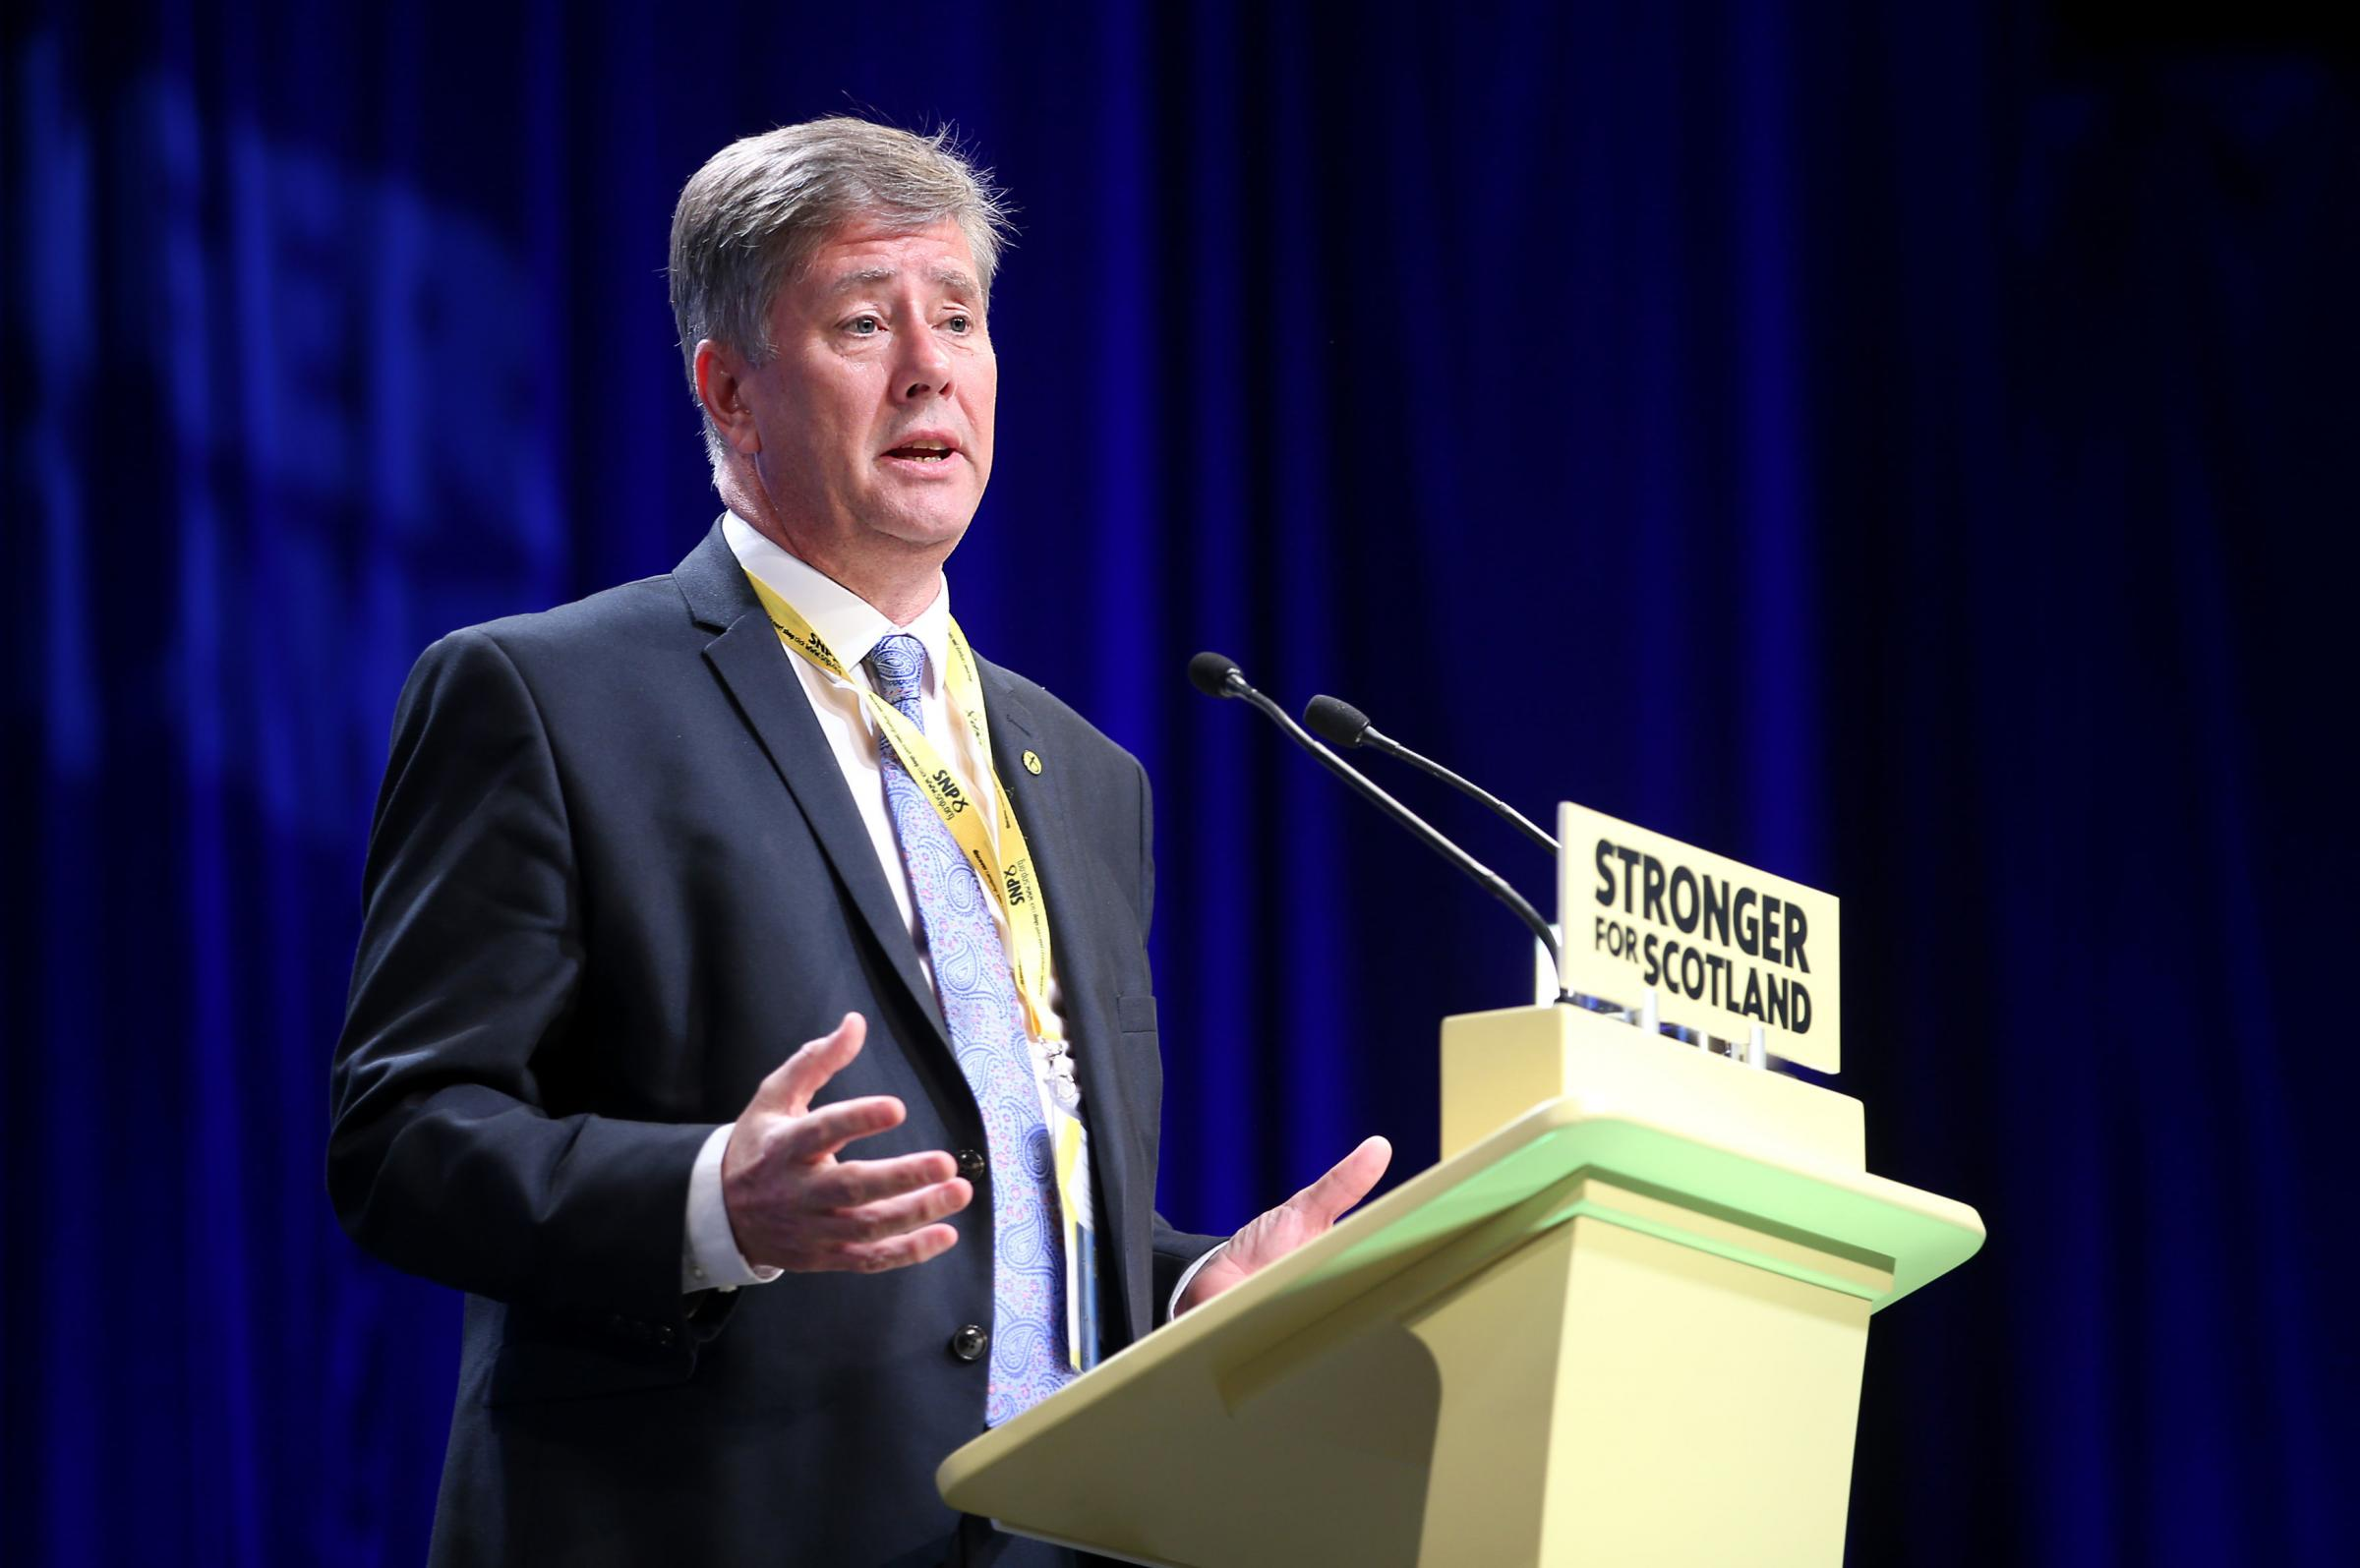 SNP depute leader Keith Brown said the movement's 'strength and depth' had been shown